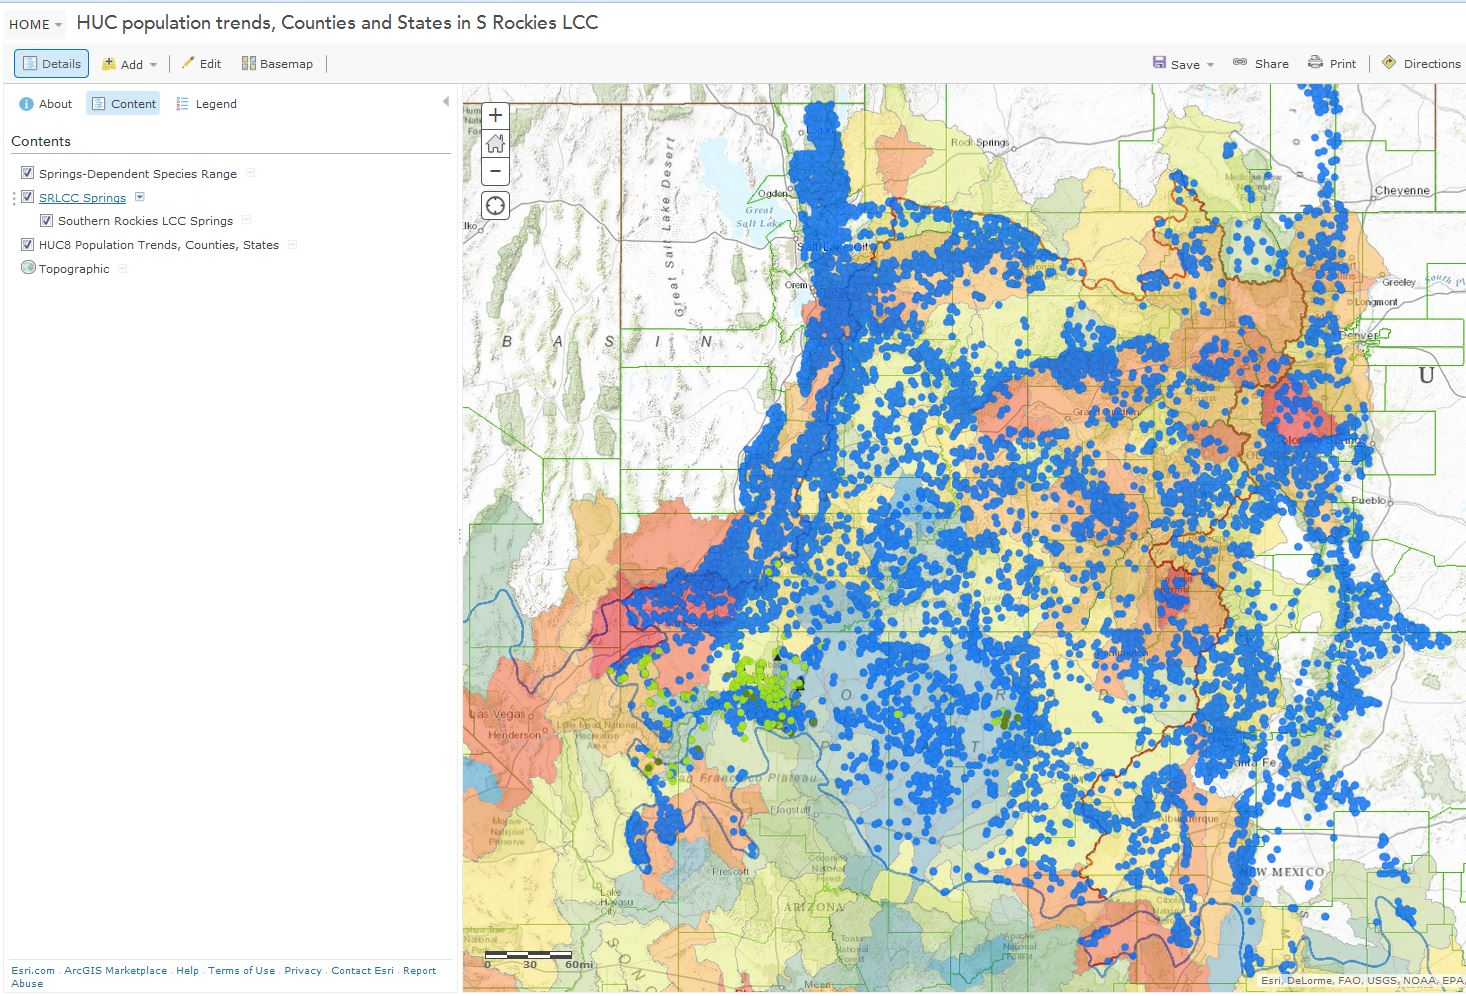 Interactive online map of publicly-available springs data within the Southern Rockies LCC. All data have been imported into the SpringsOnline database at  http://springsdata.org/ .